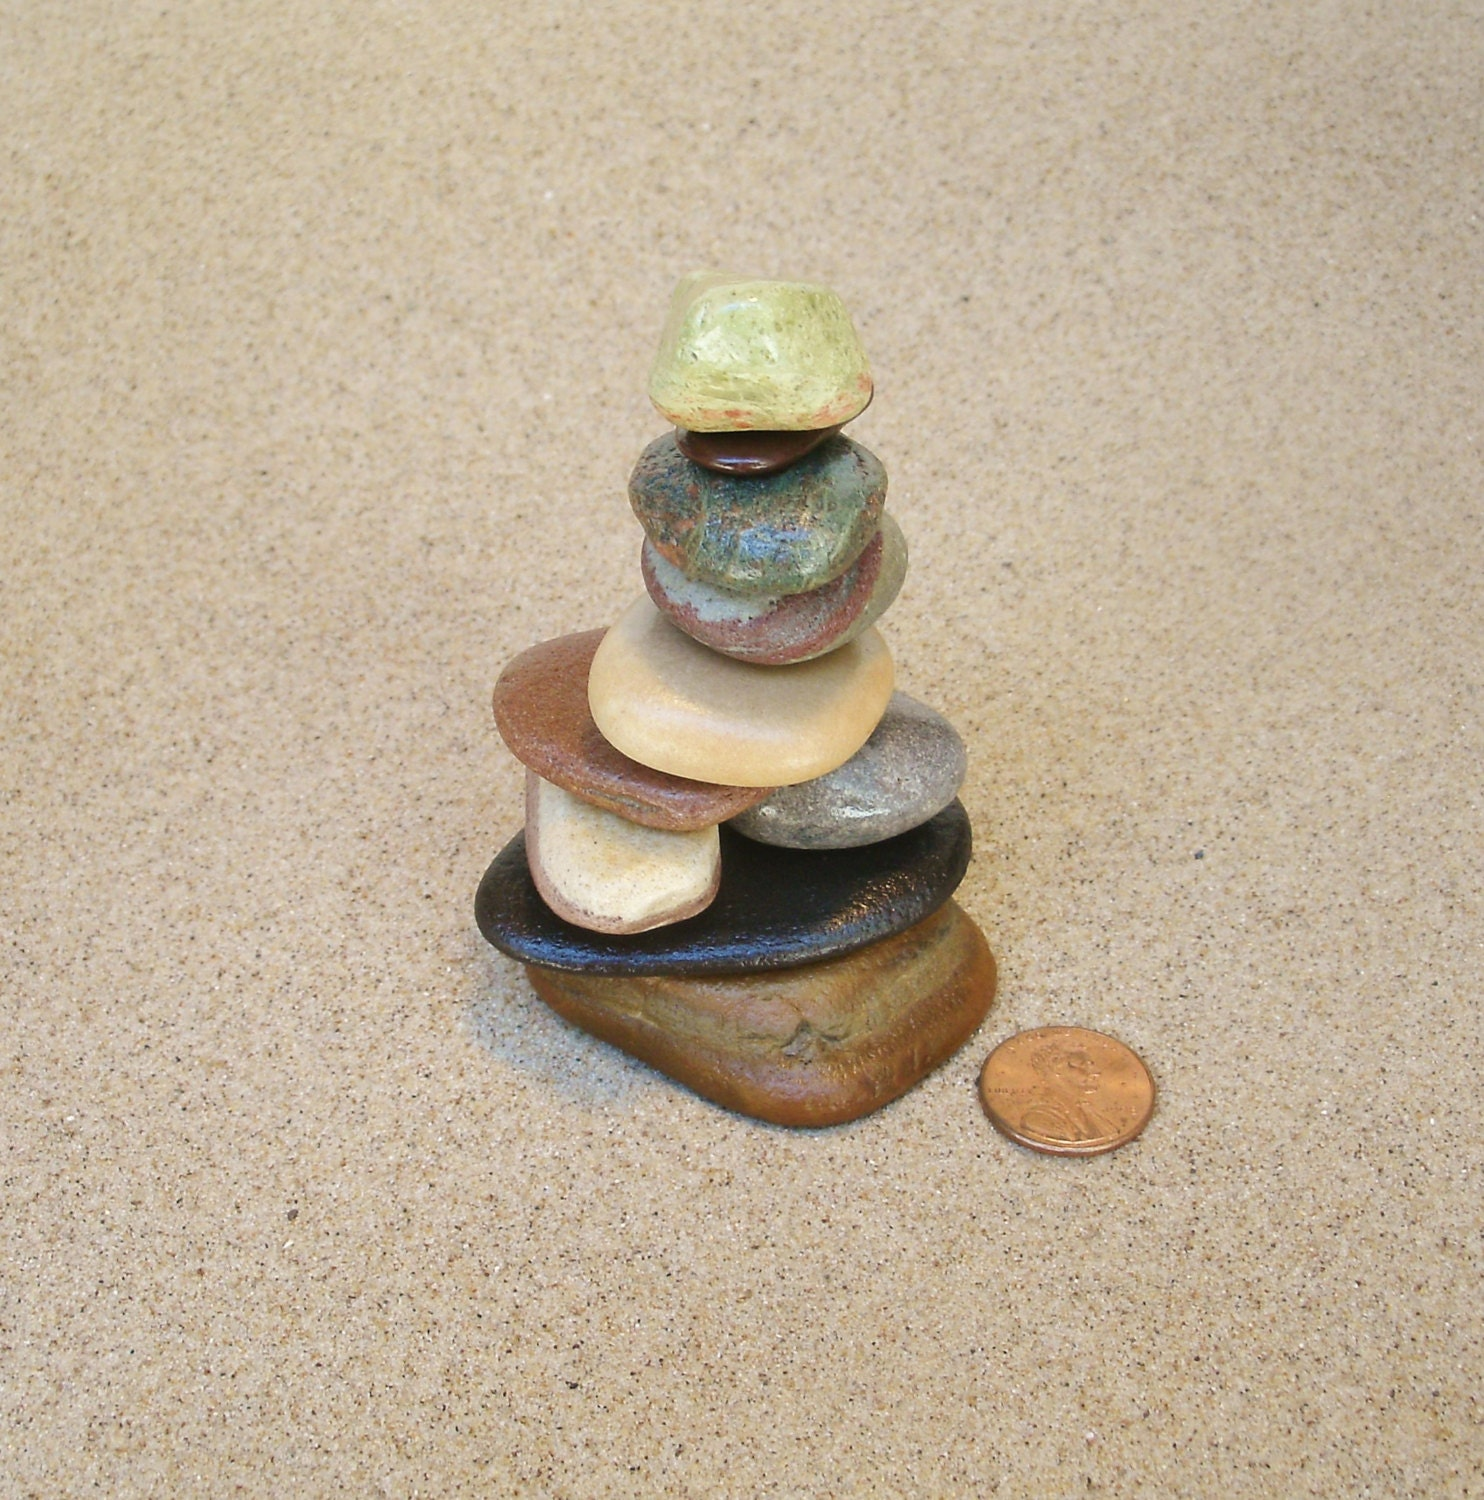 Lake michigan stacked beach stone cairn sculpture